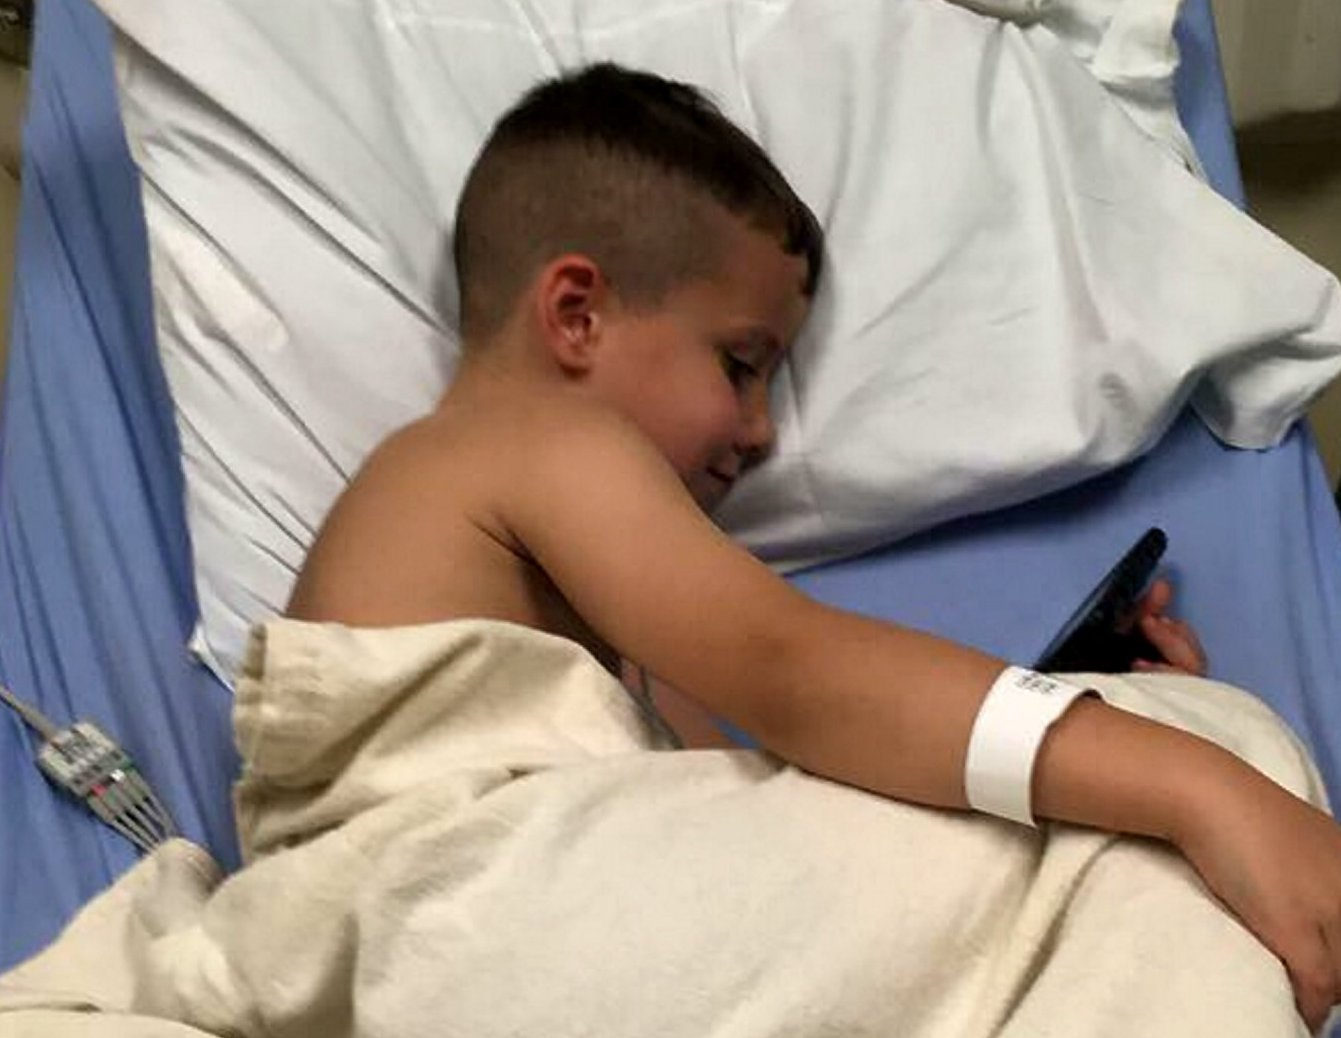 Braylen Pence, 5, at Galion Community Hospital after testing positive for METH in the aftermath of an afternoon of trick-or-treating. Galion, Ohio. October 28 2018. See SWNS story SWNYmeth. A mom has spoken about the terrifying moment her five-year-old son tested positive for METH after an afternoon of trick-or-treating. Braylen Pence suffered a seizure when he accidentally consumed the Class A drug while going door-to-door asking for Halloween candy with his dad Cambray Carwell, 24, a factory worker. The poorly boy was taken to Galion Community Hospital where his urine samples tested positive for methamphetamine, the highly addictive and dangerous substance better known as Crystal Meth. Julia Pence, 25, a gas station cashier from Mount Gilead, Ohio, arrived at the hospital to find her son disorientated and aggressive.